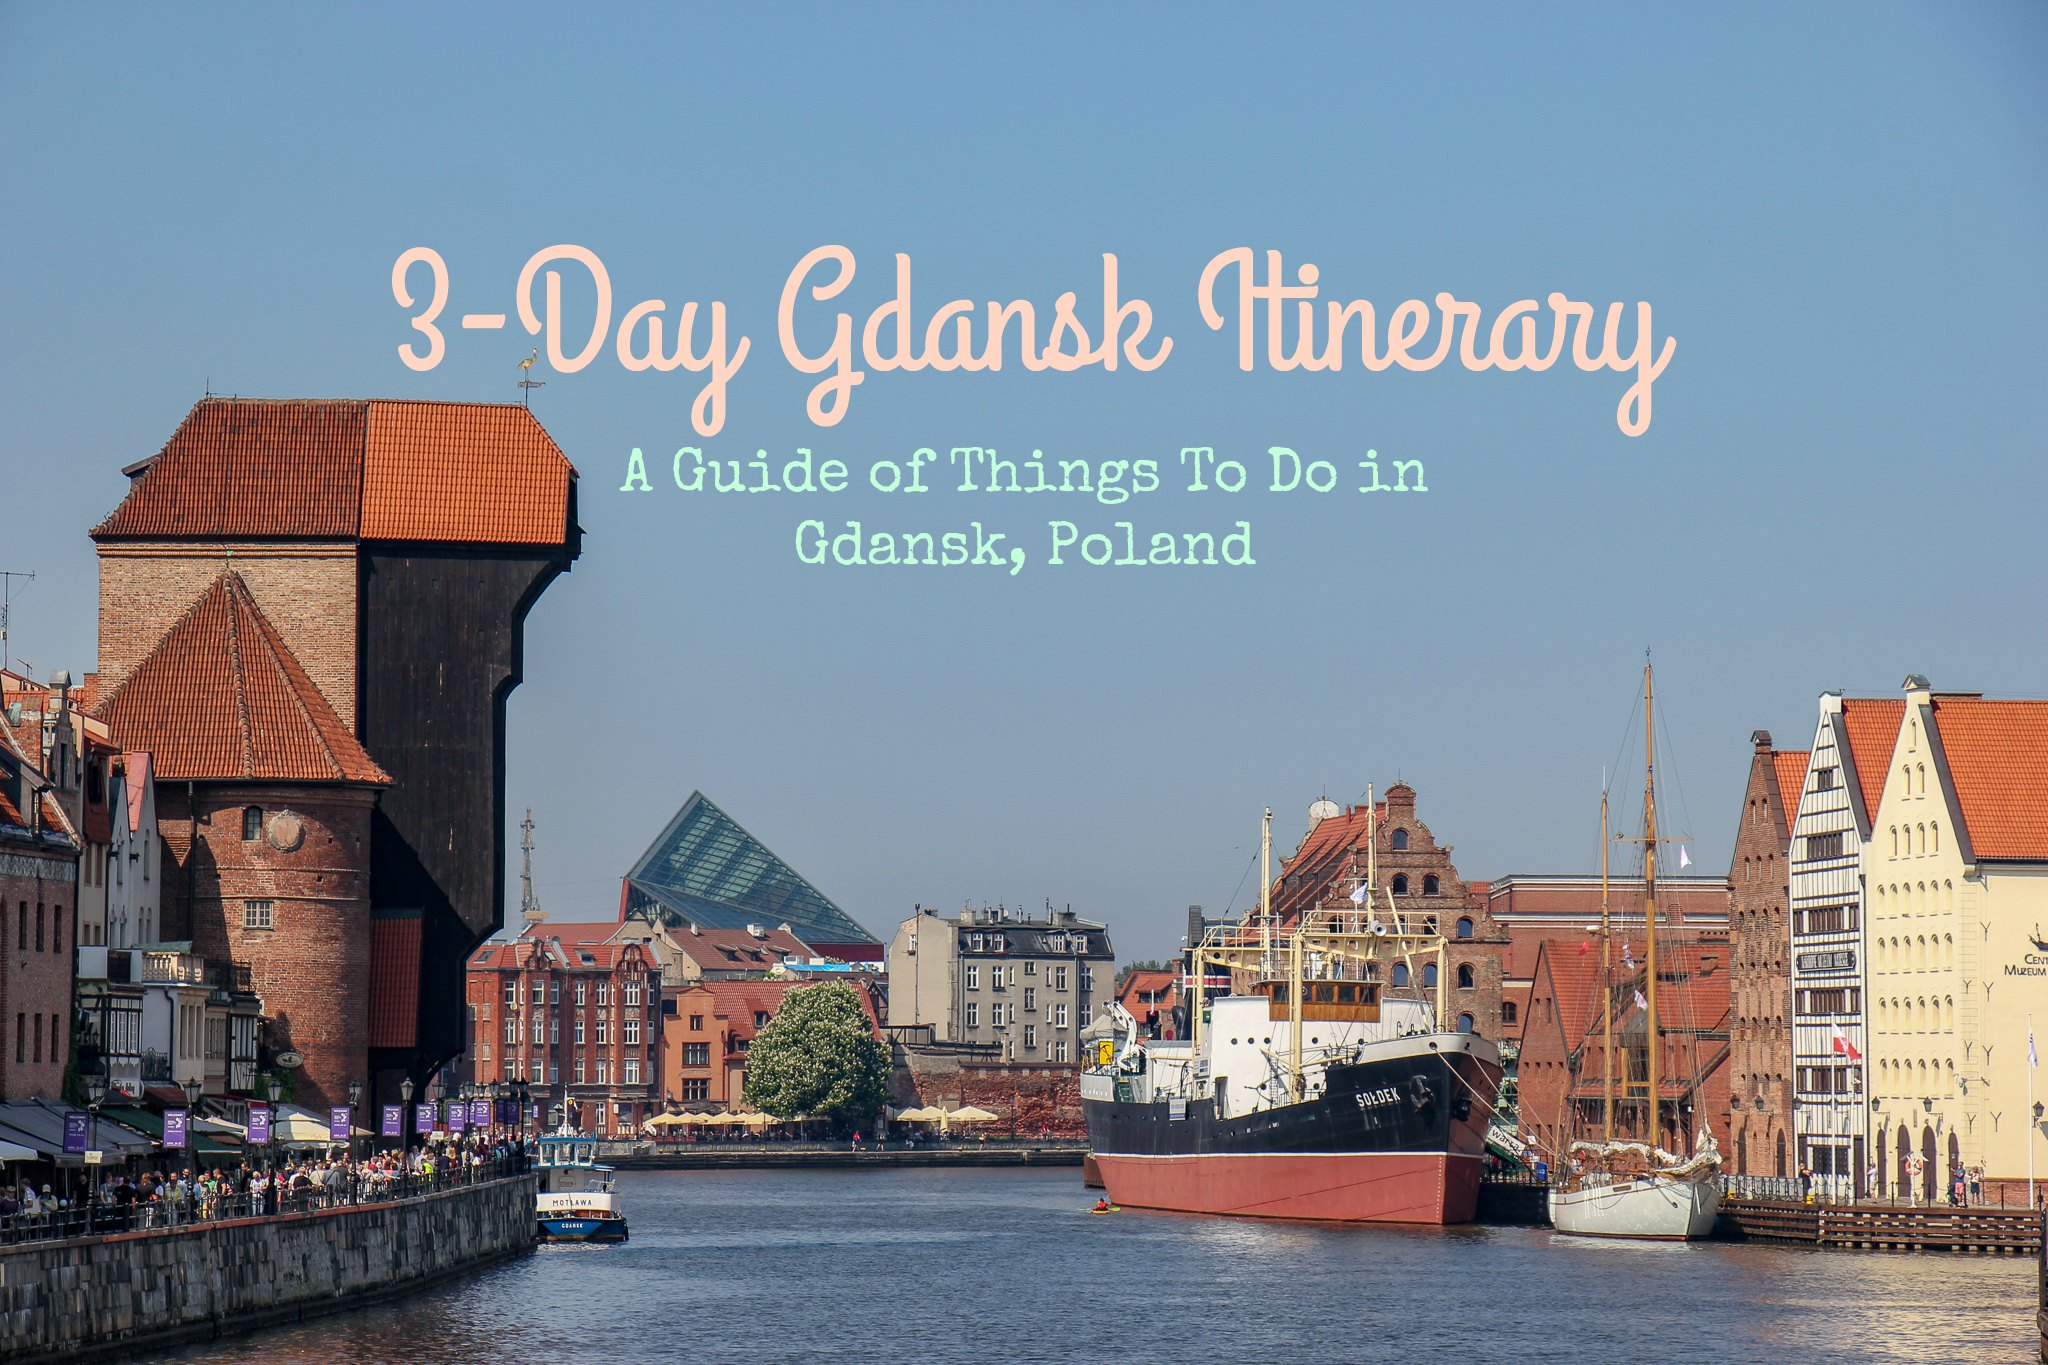 3-Day Gdansk itinerary A Guide of Things To Do in Gdansk, Poland by JetSettingFools.com